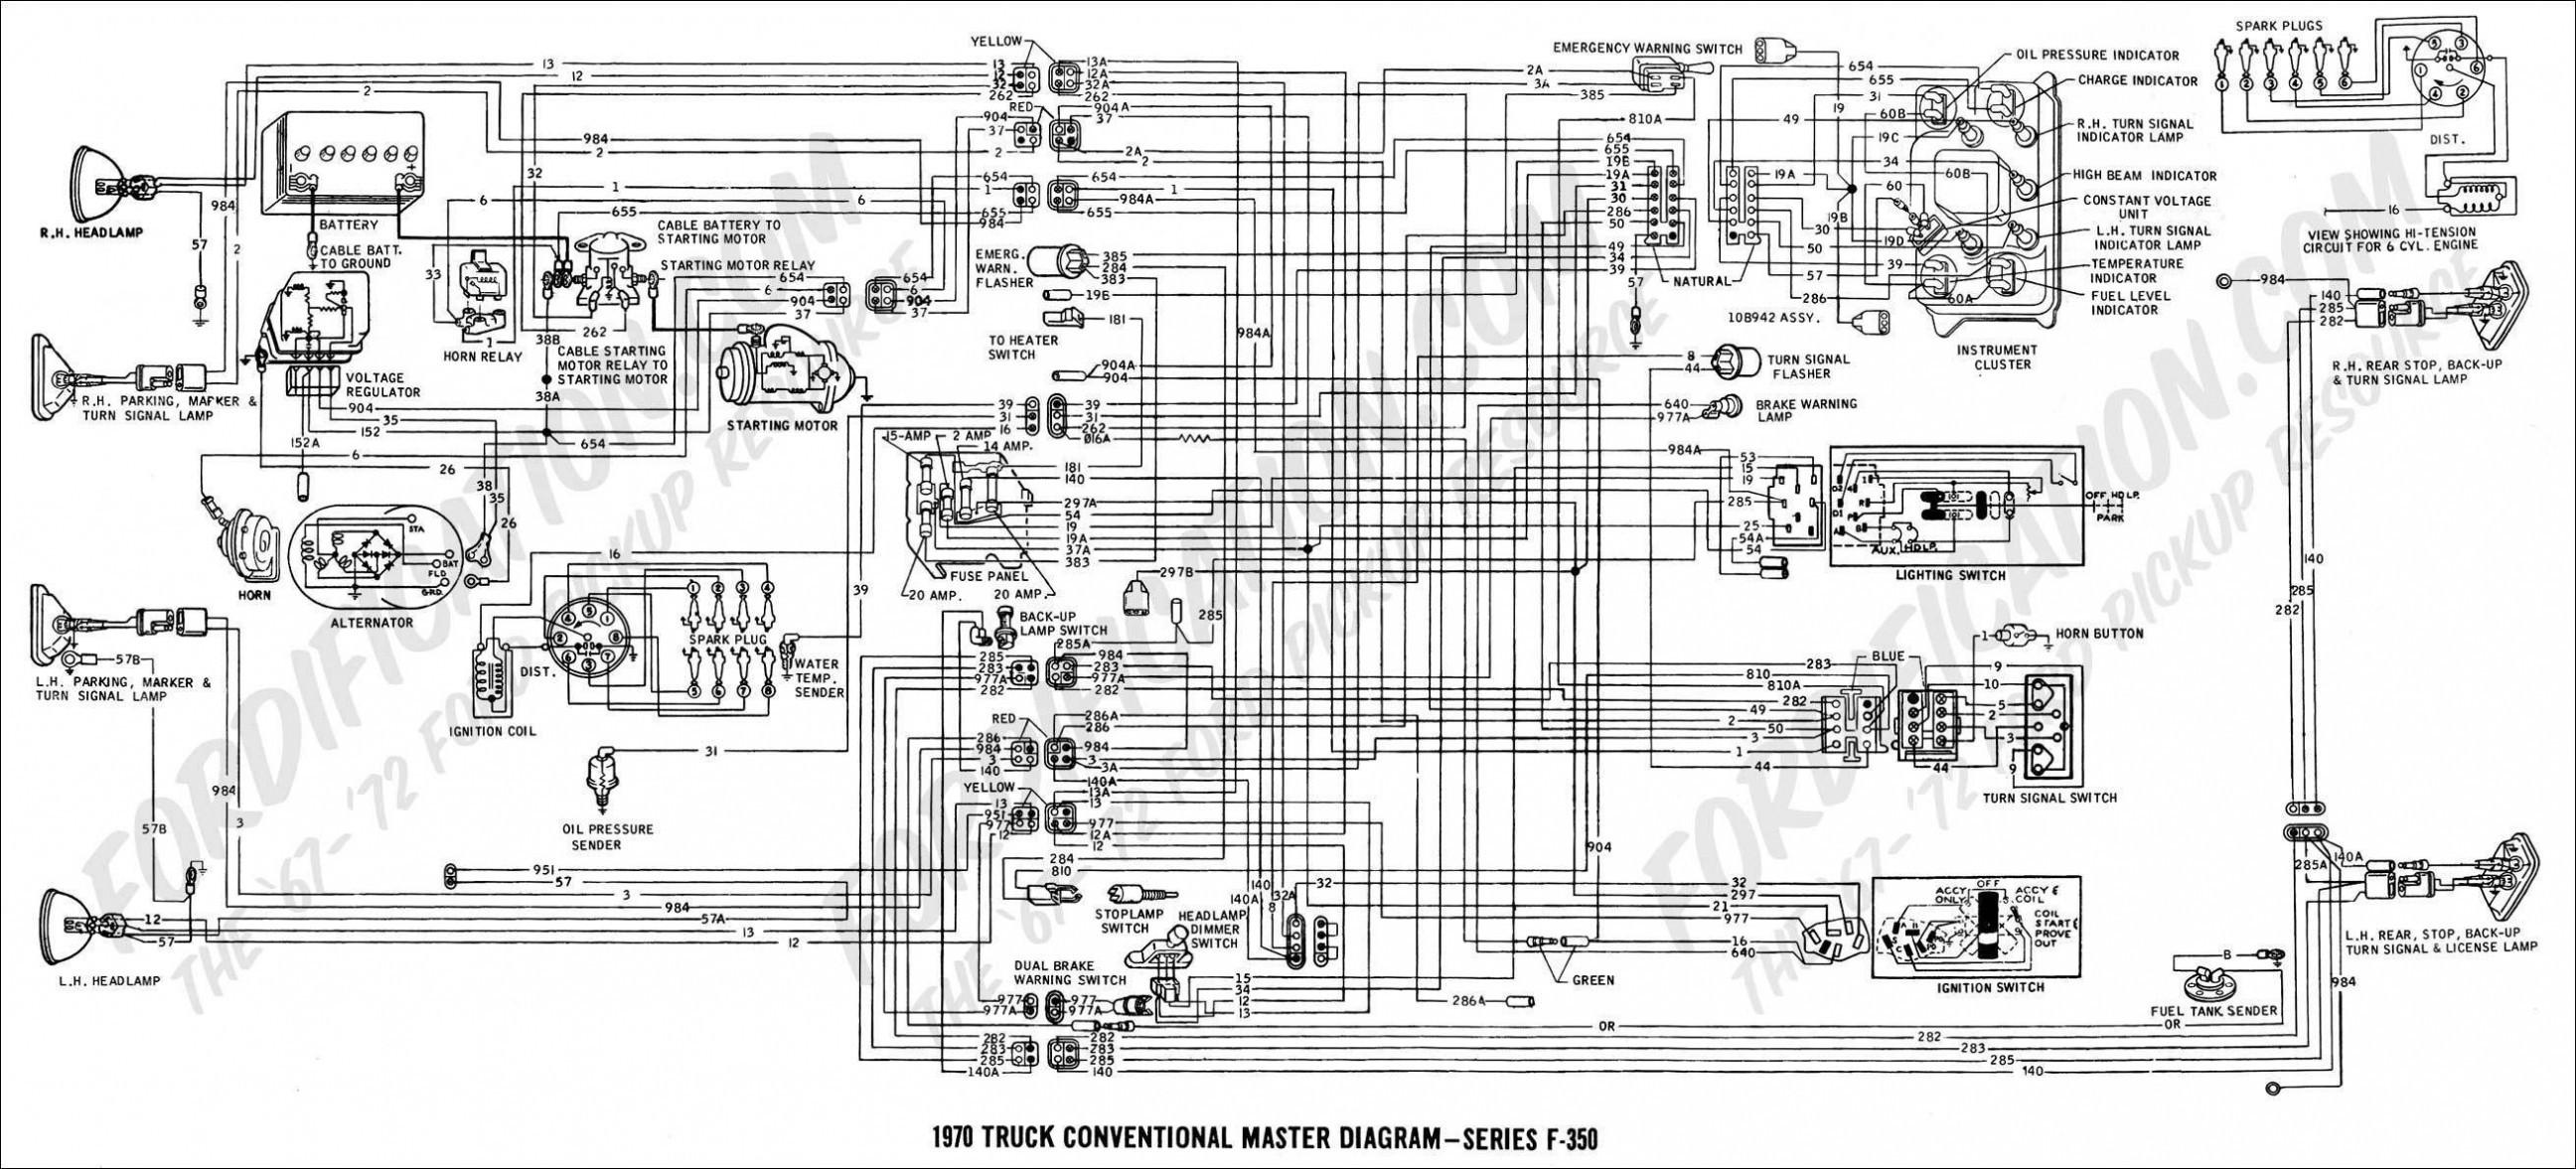 98 ford Ranger Engine Diagram ford E 350 Fuel Injector Diagram Premium Wiring Diagram Design Of 98 ford Ranger Engine Diagram